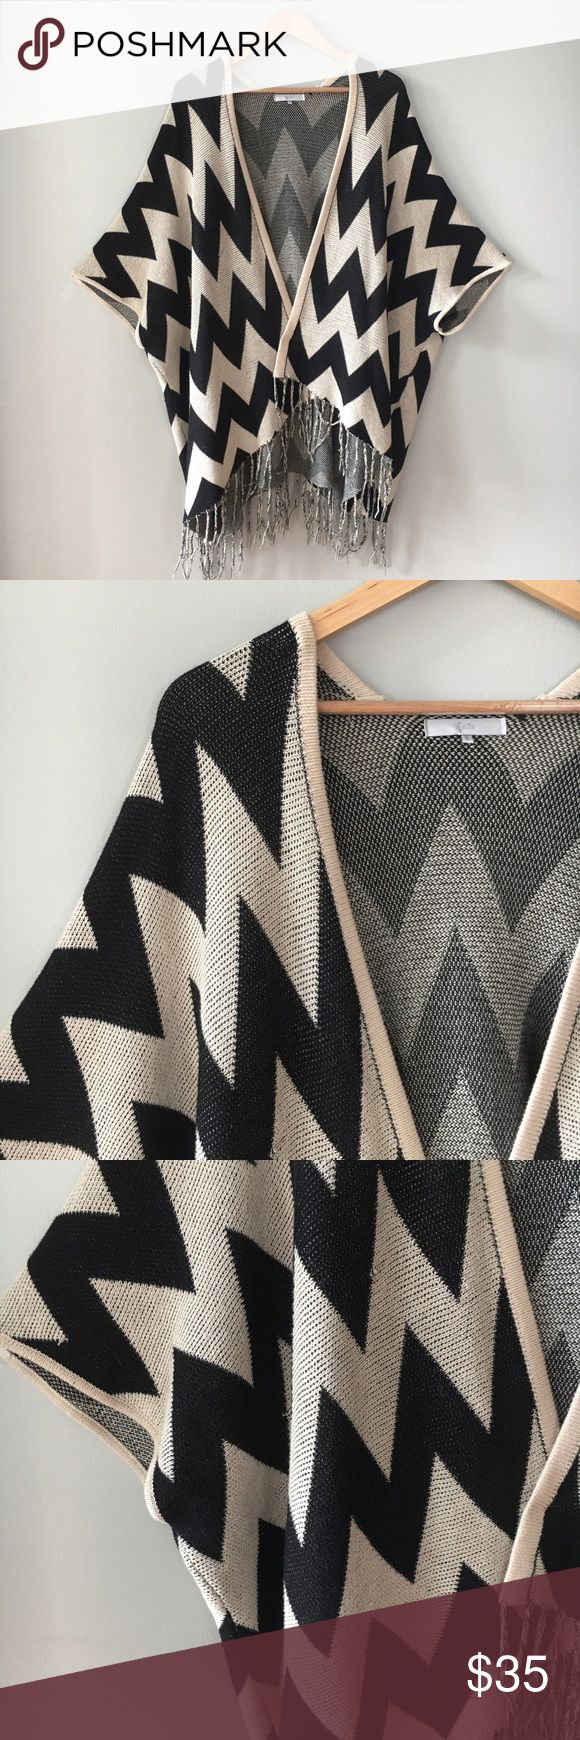 "Chevron Chunky Knit Kimono Fate Chevron chunky knit kimono Oversized cardigan in black and tan chevron  Open drape front  Fringe hem CARE: Hand wash cold or dry clean. Lay flat to dry. Cool iron if needed.  MATERIALS: 100% cotton  SIZE: Small  MEASUREMENTS: Approximately  32"" LENGTH (high point shoulder to hem) 25"" SLEEVE (nape of neck to cuff) 10.5"" SLEEVE OPENING 38"" BUST (armpit to armpit on backside)  Excellent condition. Runs big. Fate Sweaters Cardigans"